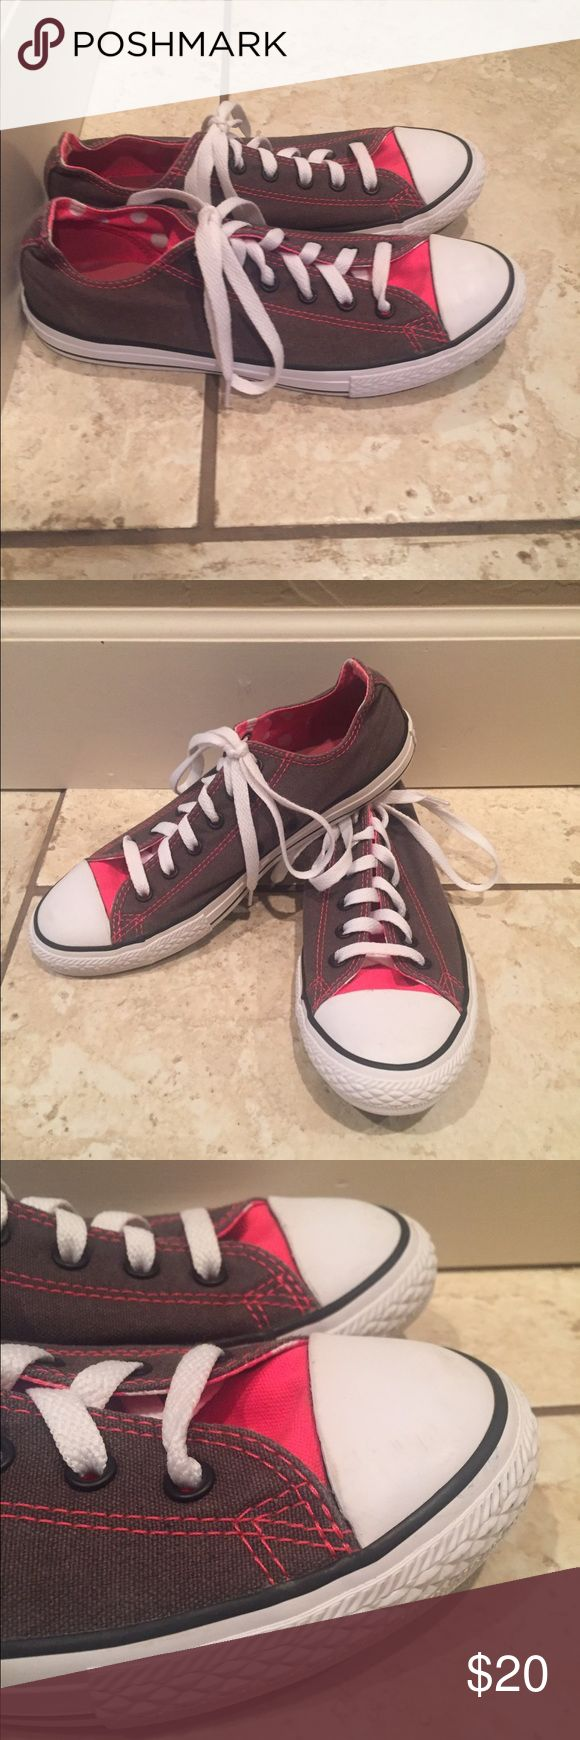 Ladies Converse - Gray/Pink This pair of Ladies Converse are in excellent shape! Hardly worn at all by my daughter. Converse Shoes Sneakers